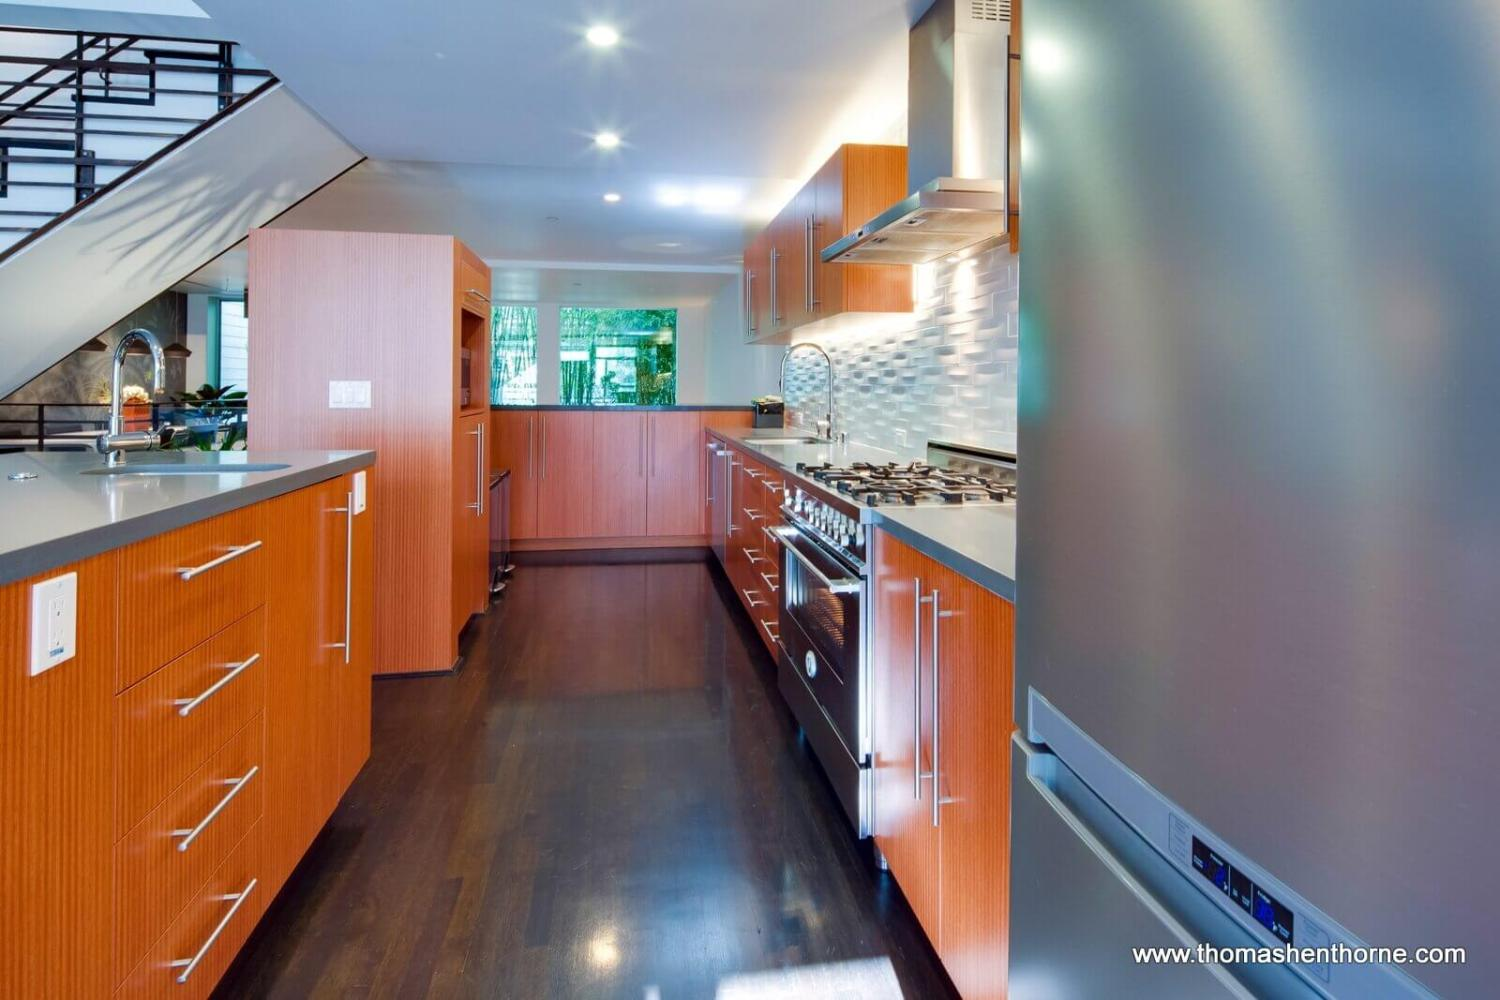 Stainless appliances in kitchen and cabinetry